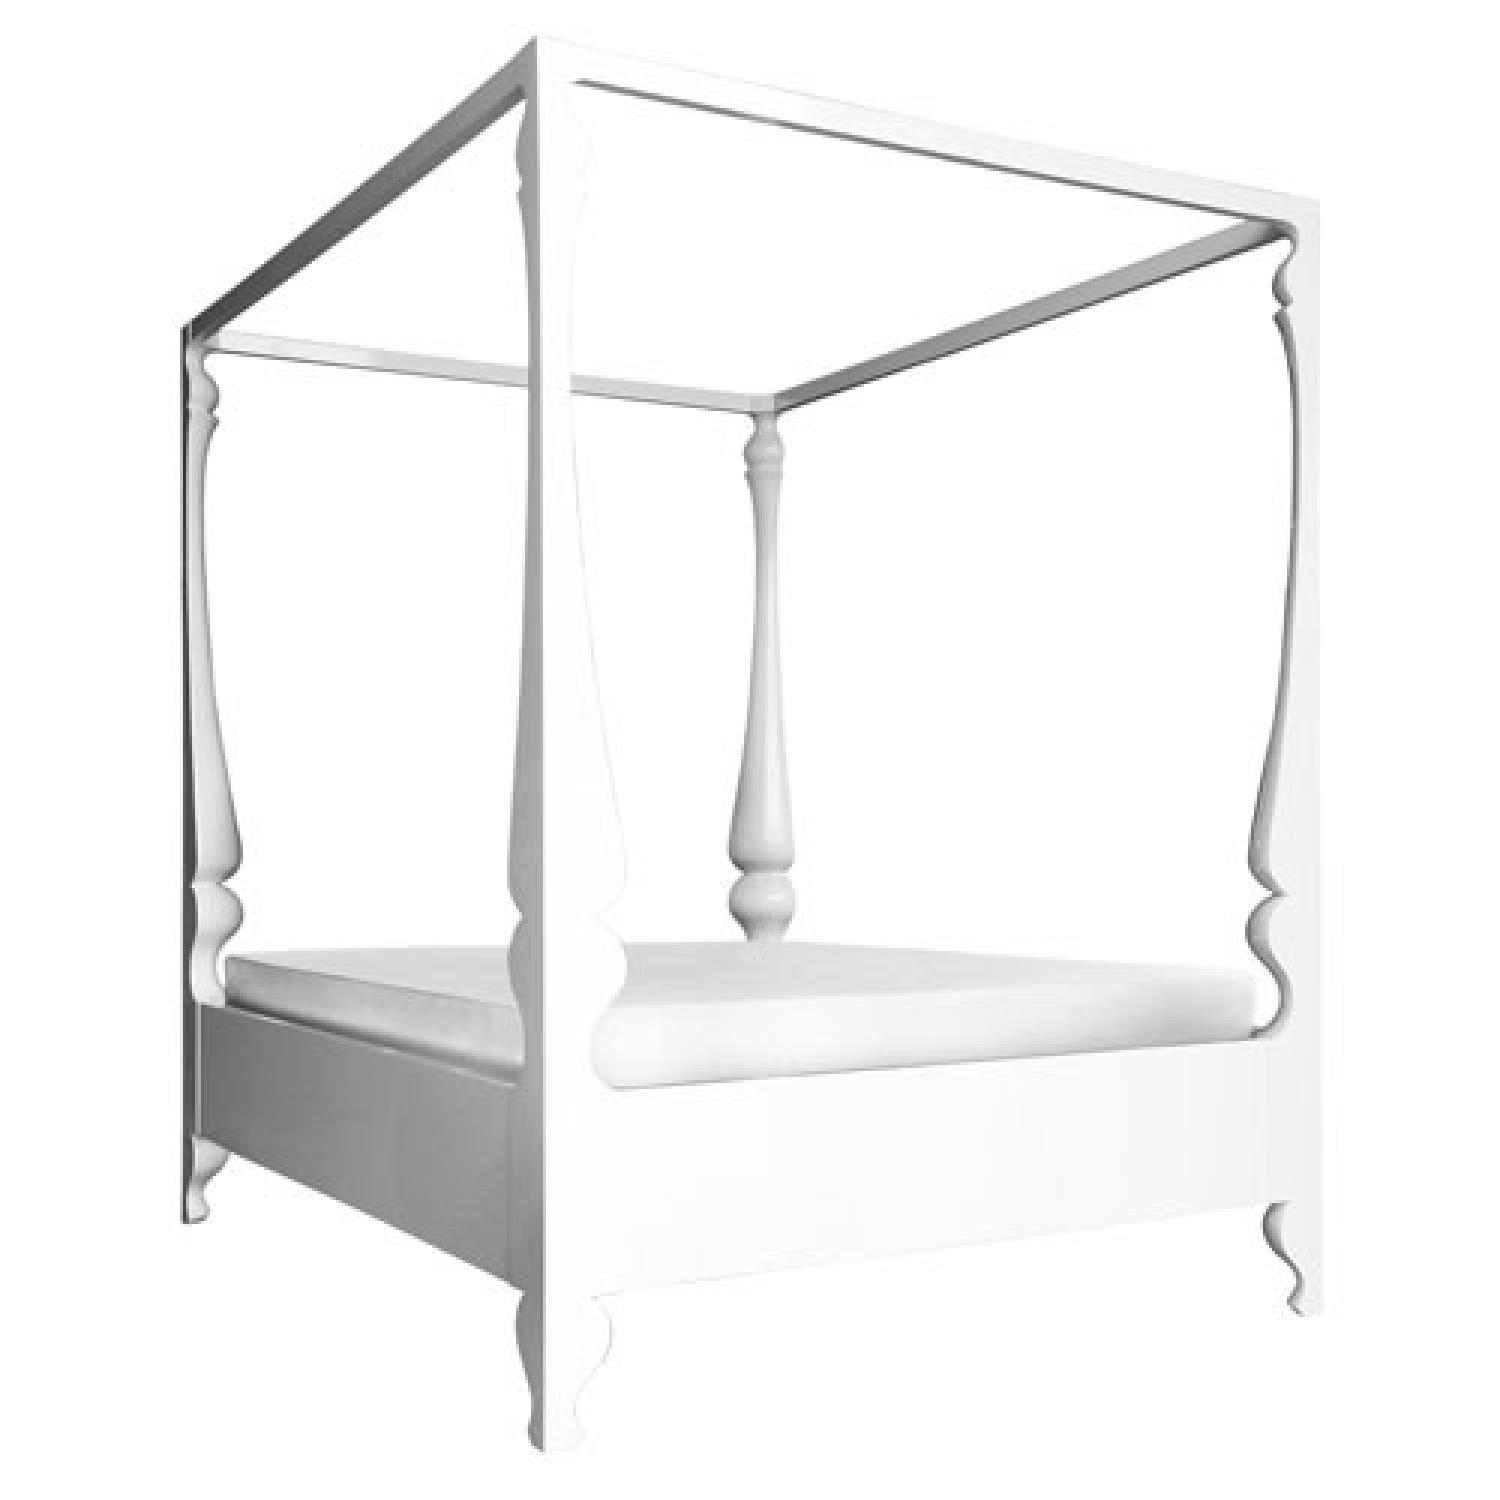 Reeves Design Louis Four Poster King Bed in White - image-7